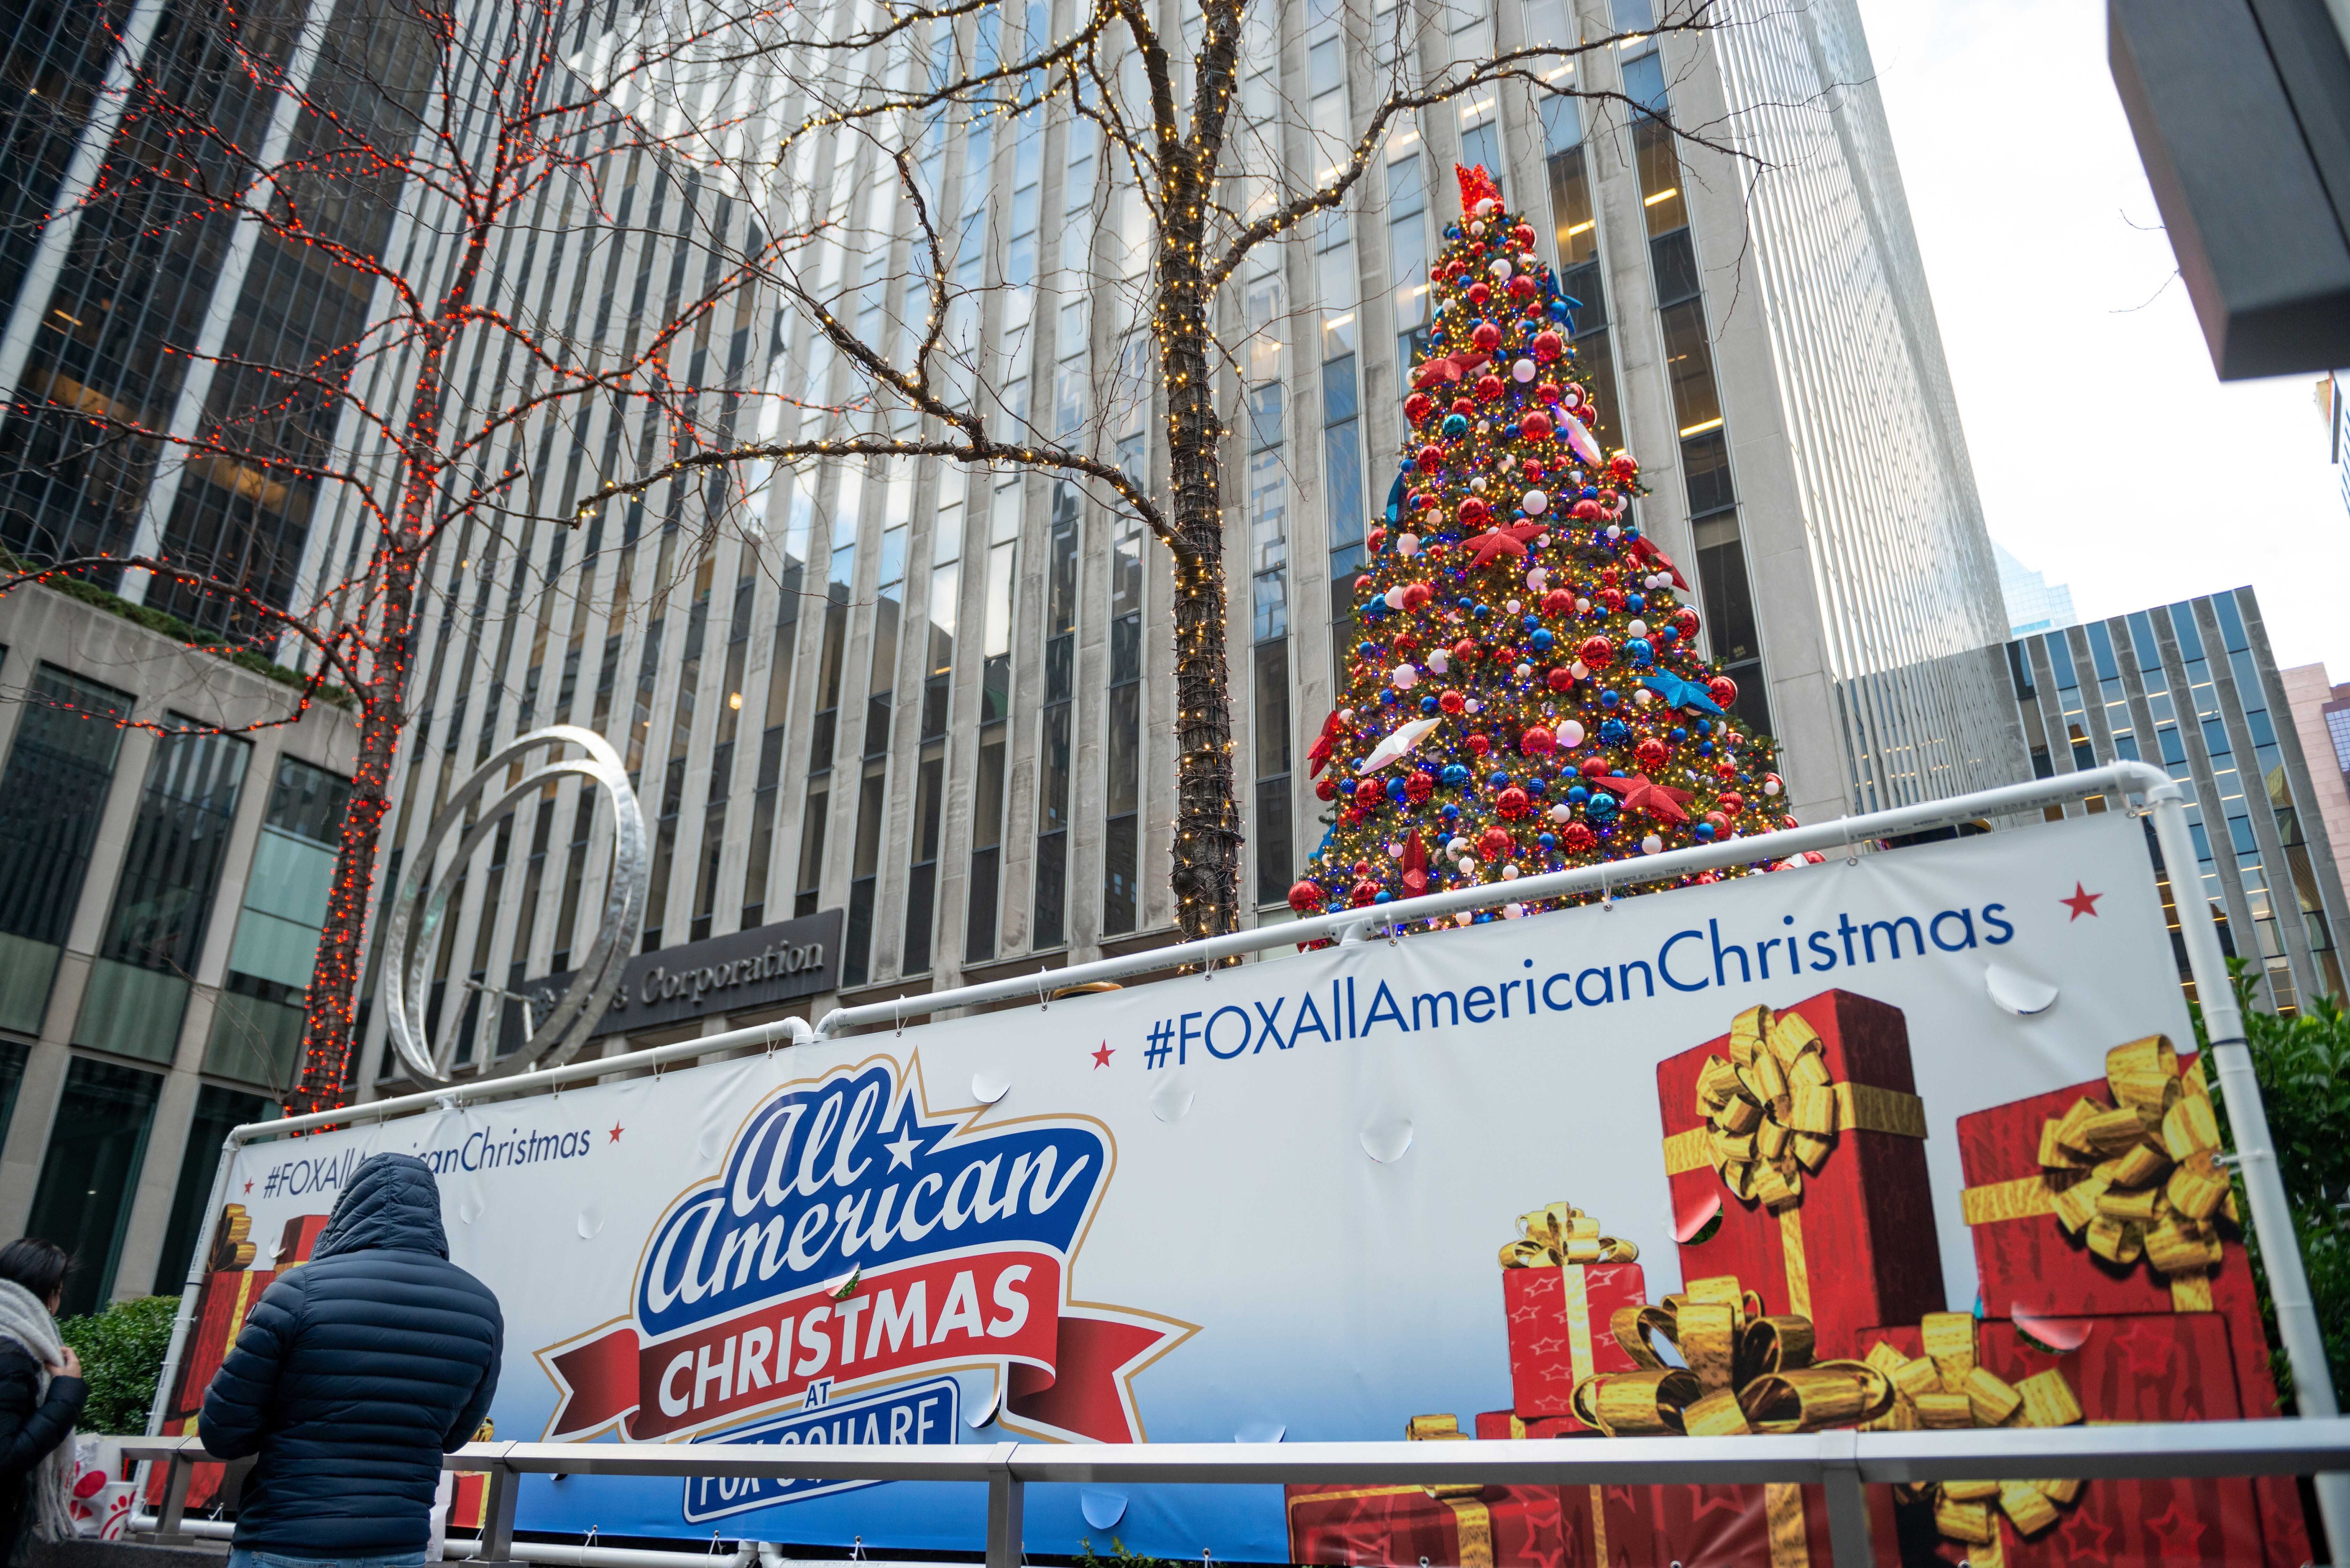 """An """"All American Christmas at Fox Square"""" sign near Christmas decorations in front of the News Corporation building in New Yo"""